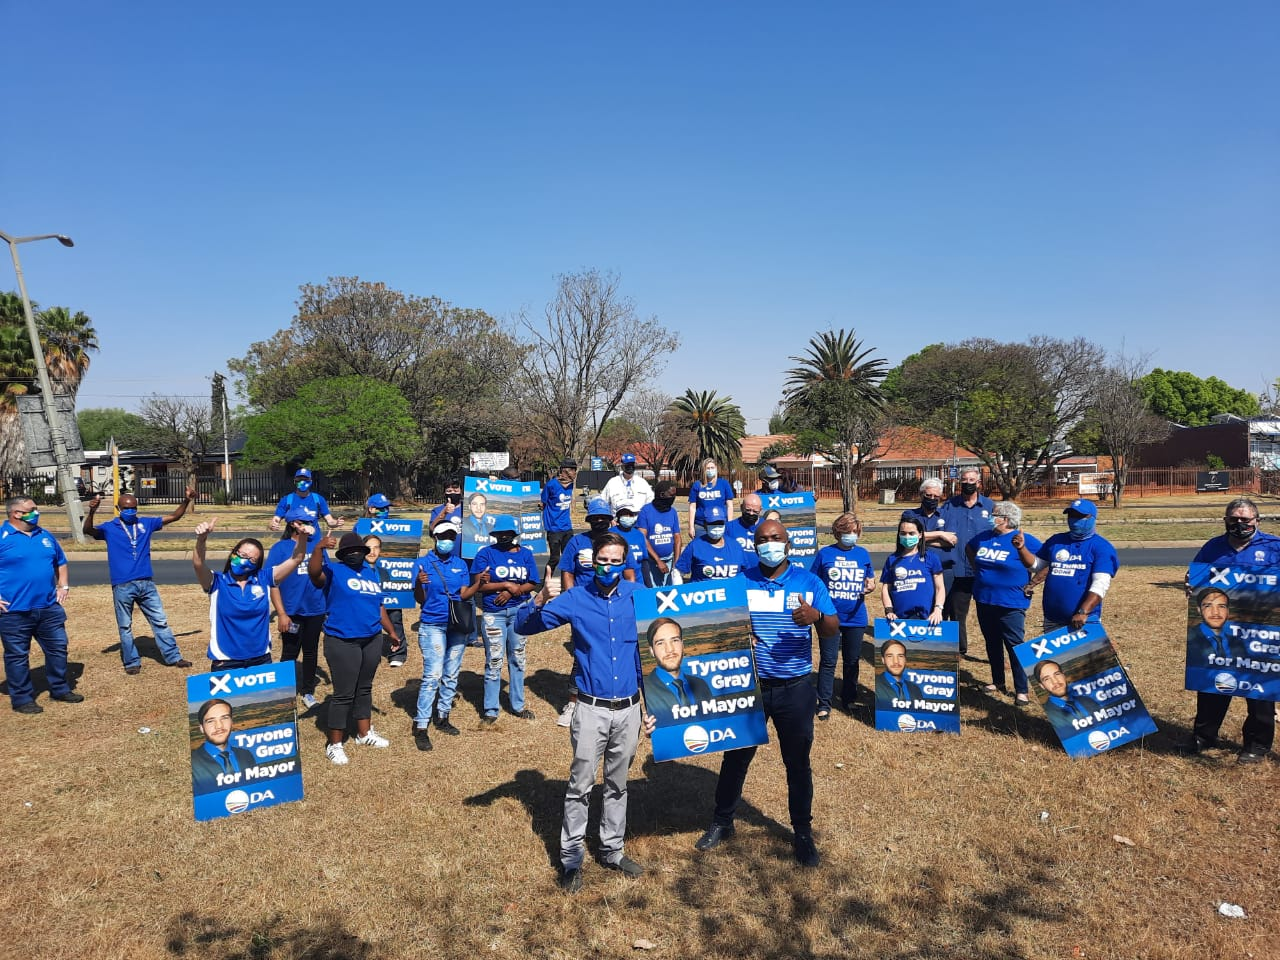 DA mayoral candidate, Tyrone Gray, flights first campaign poster to win Mogale City